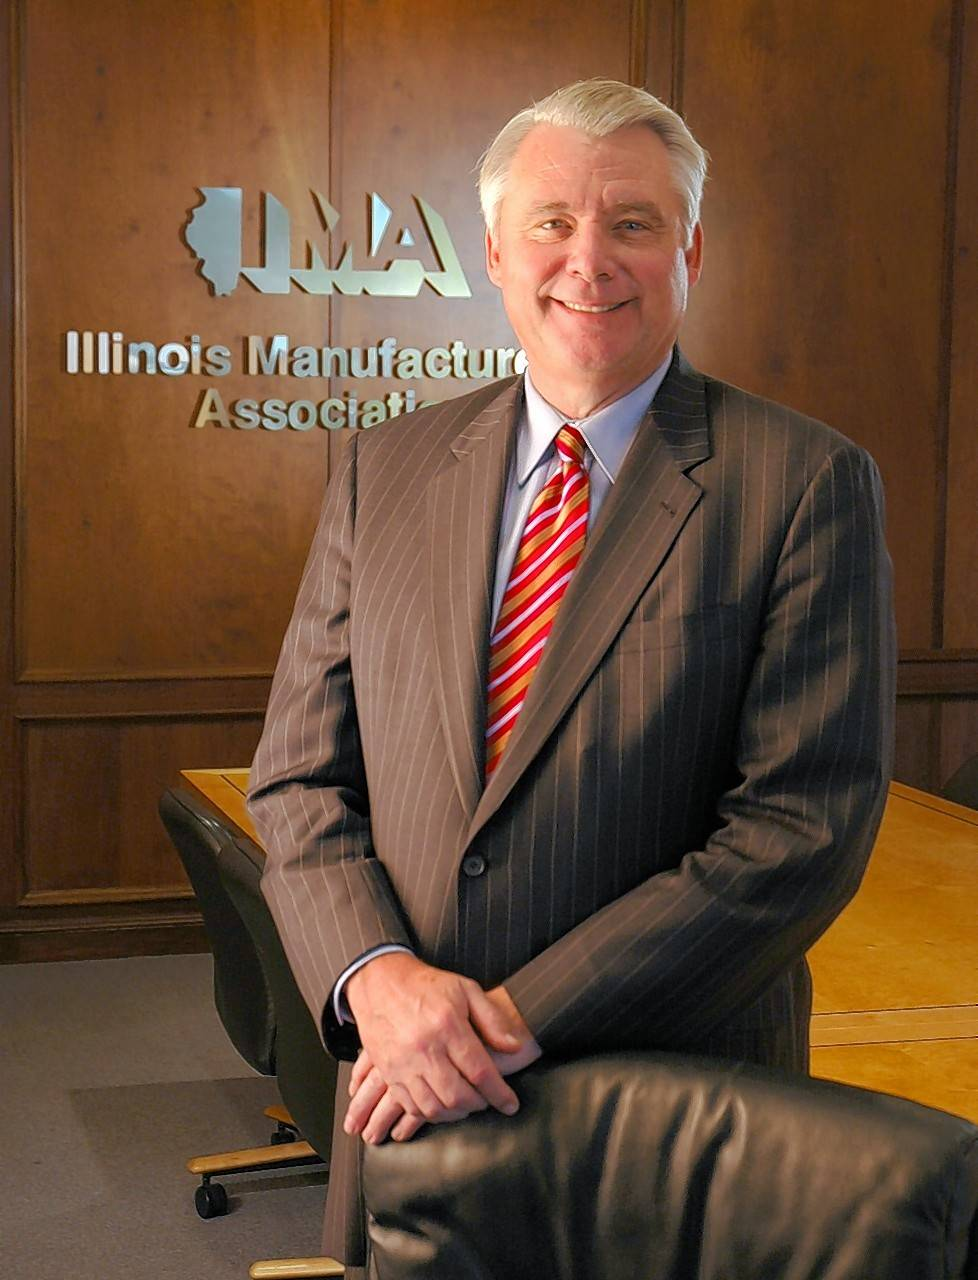 Greg Baise, president and CEO of the Illinois Manufacturers' Association, said Wednesday that if the state doesn't get its fiscal house in order, more chaos could follow in the manufacturing sector.